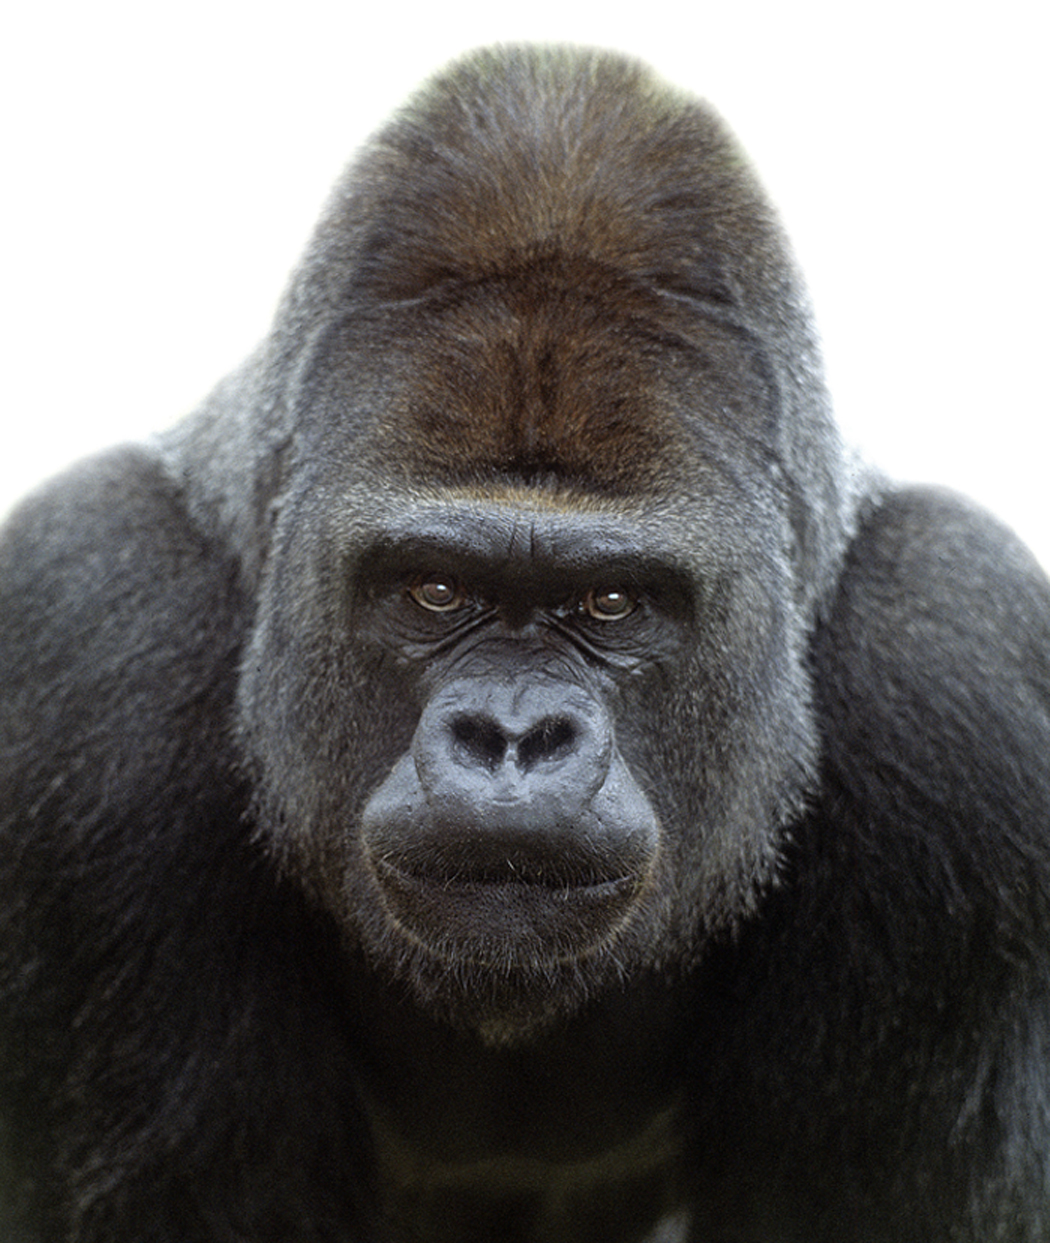 Gorilla face - photo#15